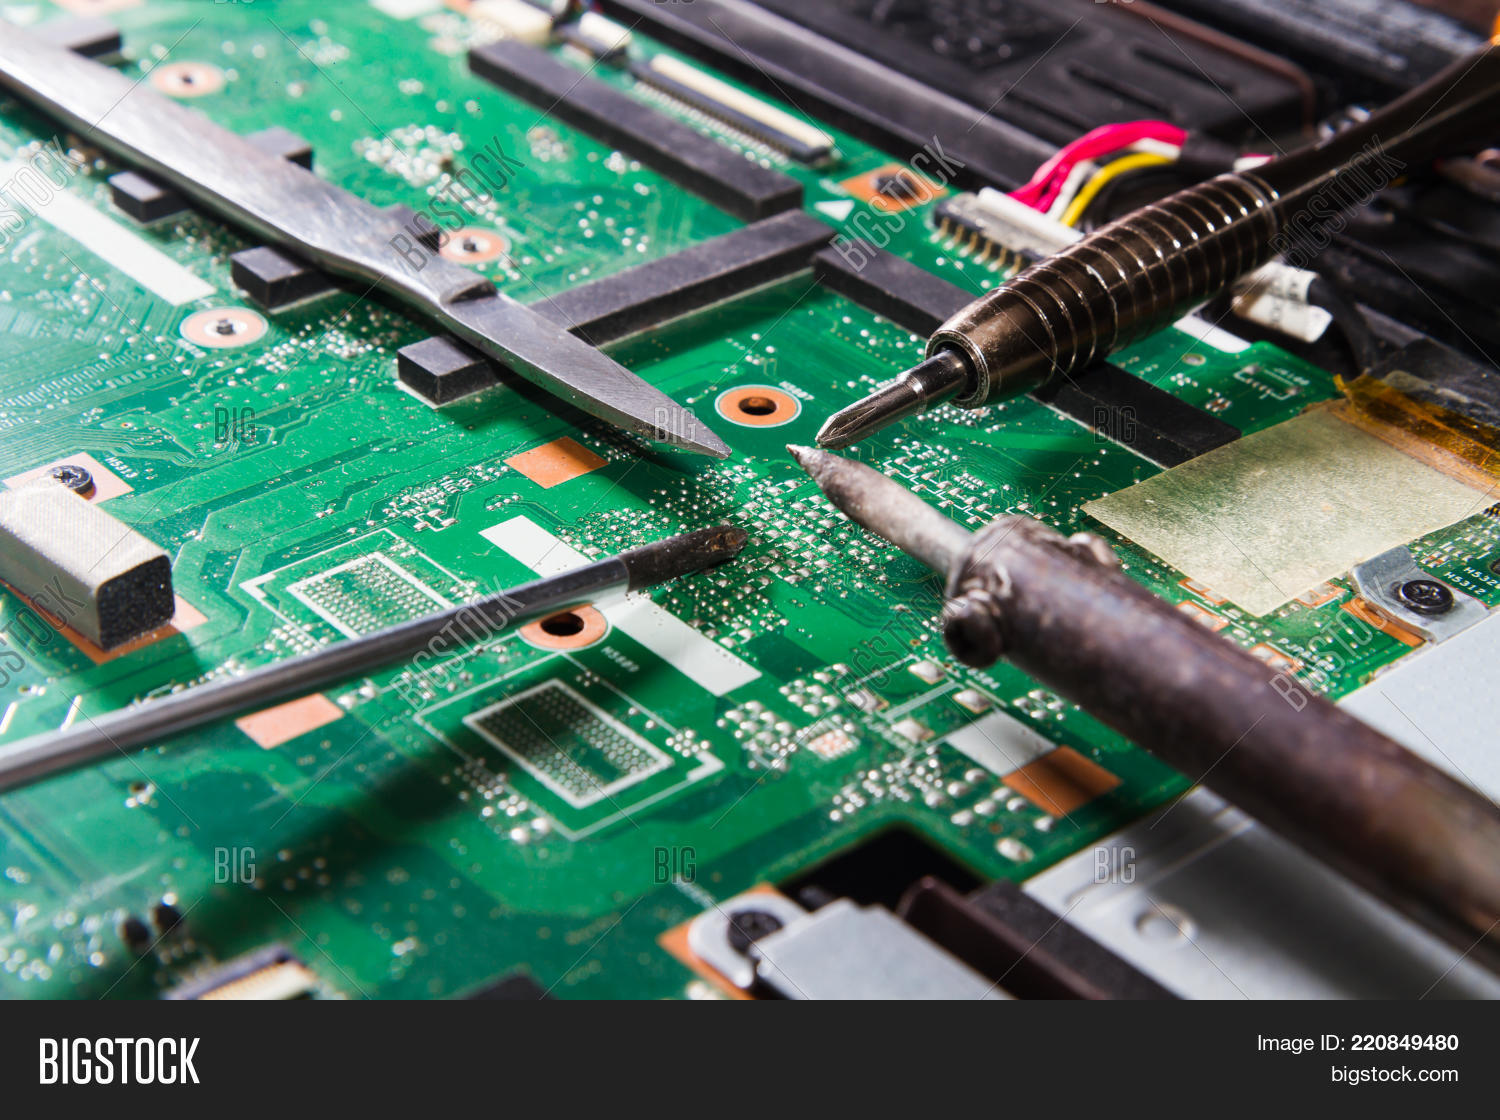 Printed Circuit Board Image Photo Free Trial Bigstock Soldering With Tools Green Screwdriver Iron Knife Close Up